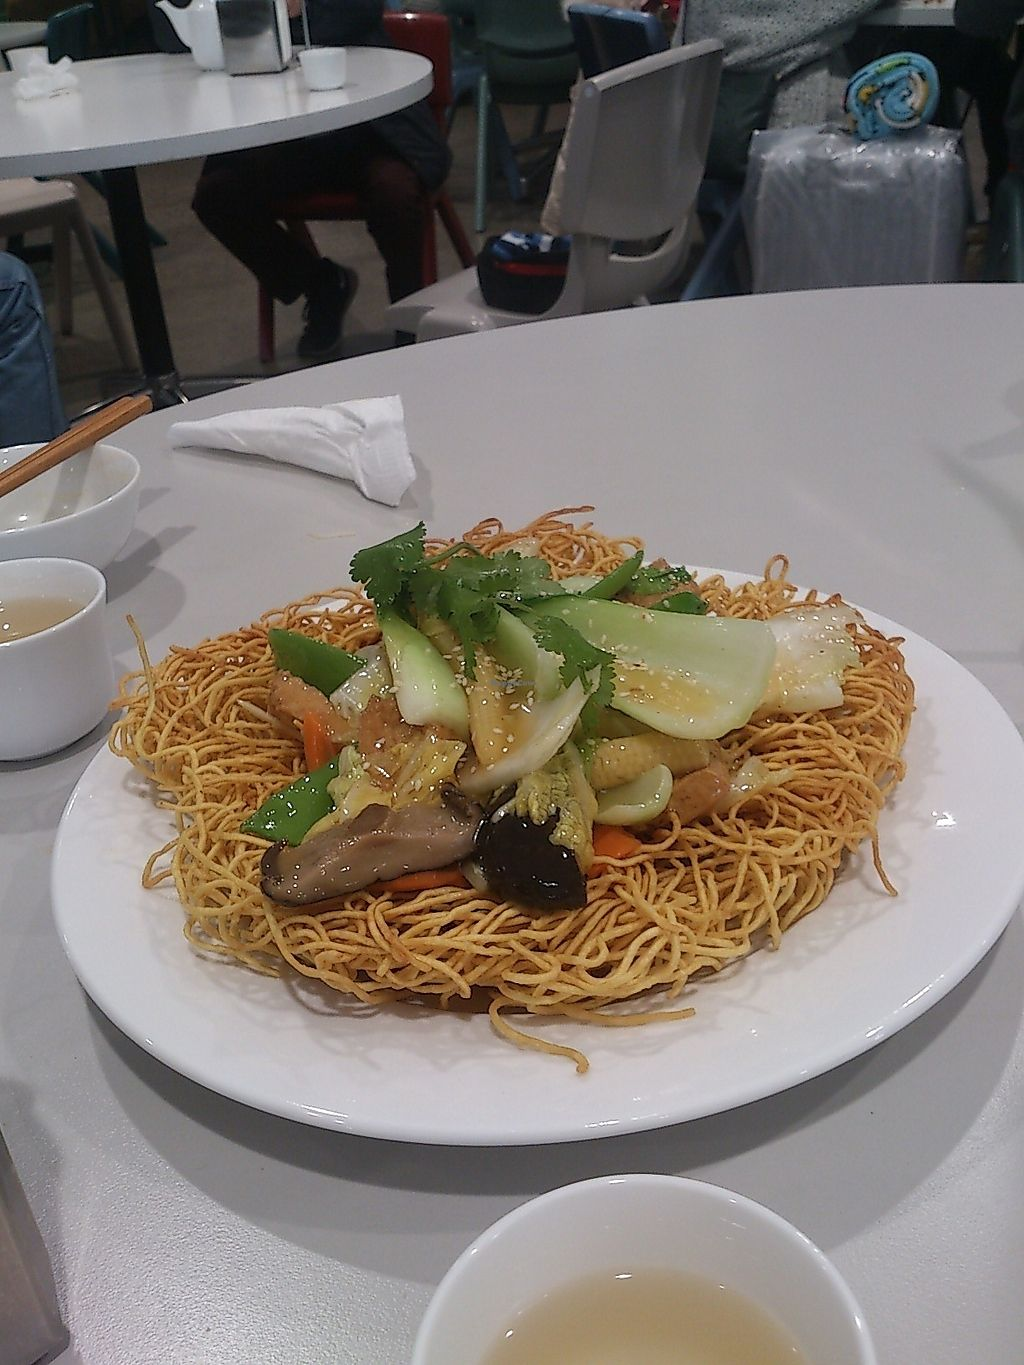 """Photo of Hoa Nghiem Vegie Hut  by <a href=""""/members/profile/vegelover"""">vegelover</a> <br/>Crispy Egg Noodles With Stir Fry Vegetables <br/> January 27, 2018  - <a href='/contact/abuse/image/108975/351281'>Report</a>"""